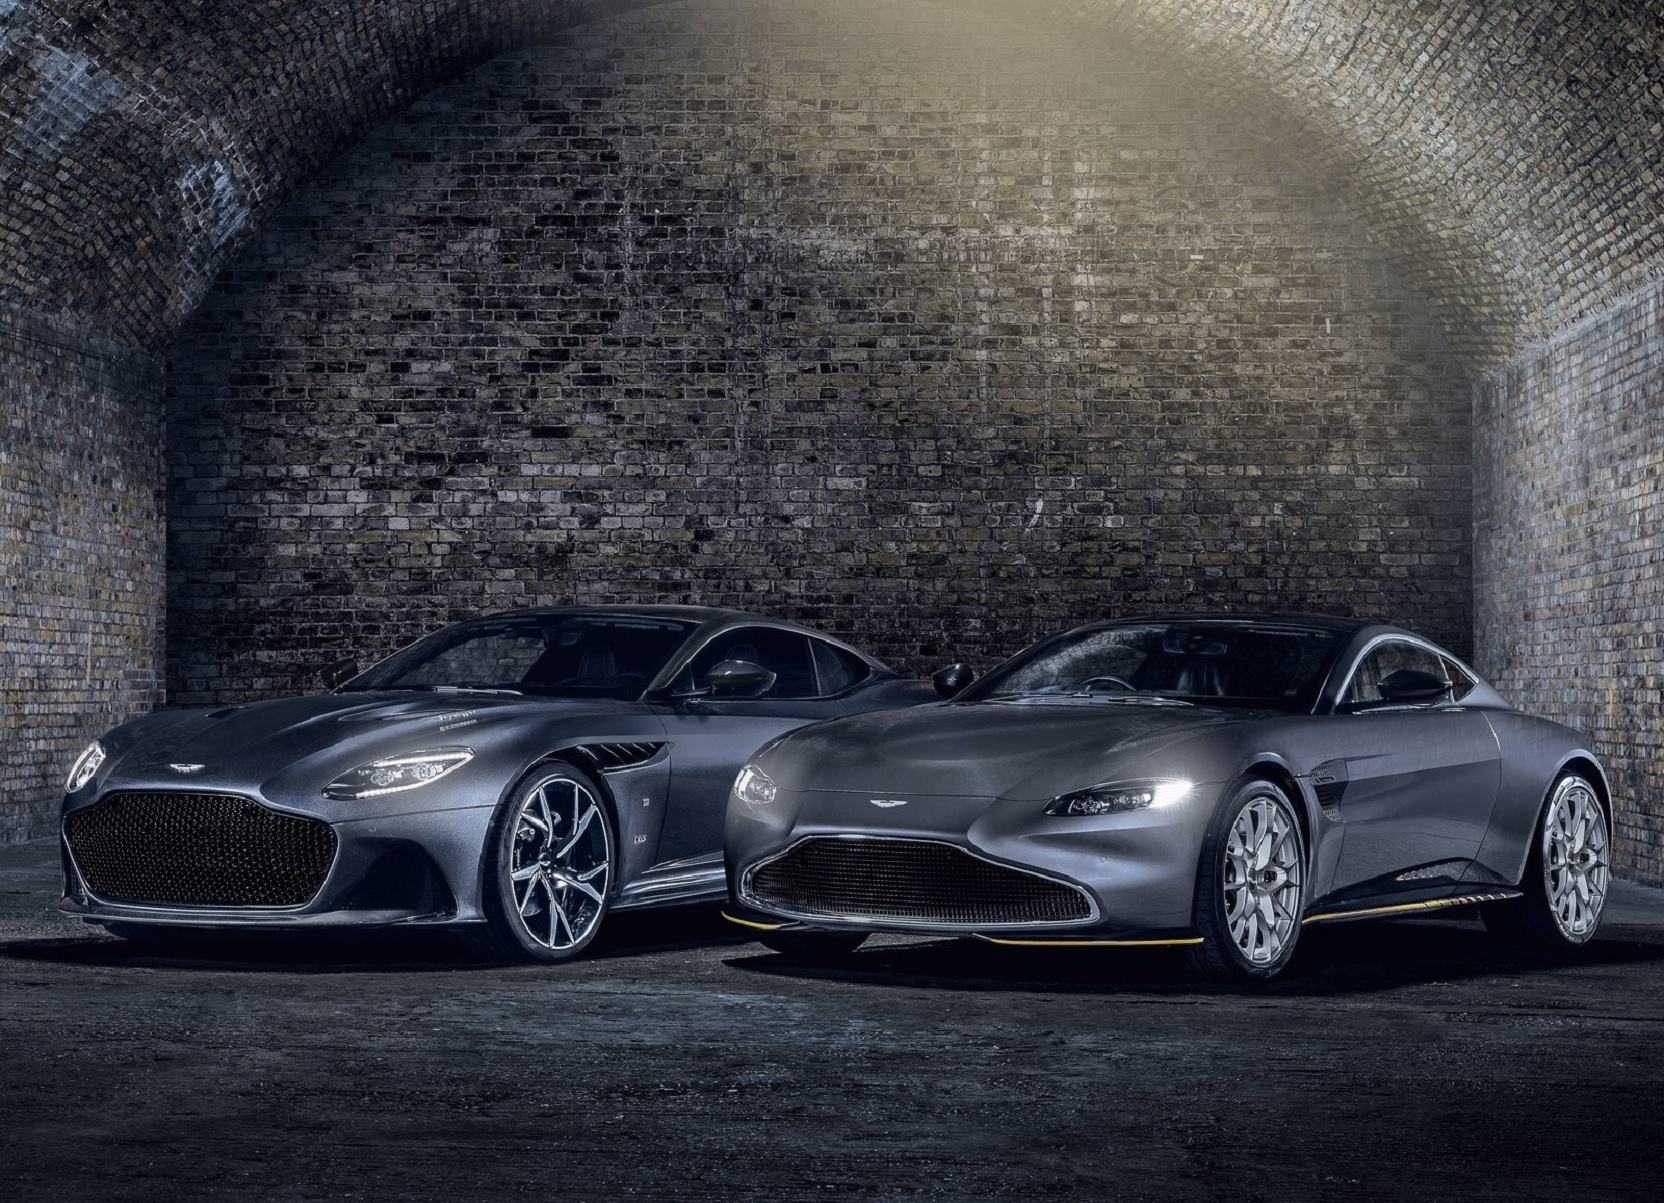 00 No No Time To Die Delays Left Aston Martin Wounded Motorbiscuit Editorpen